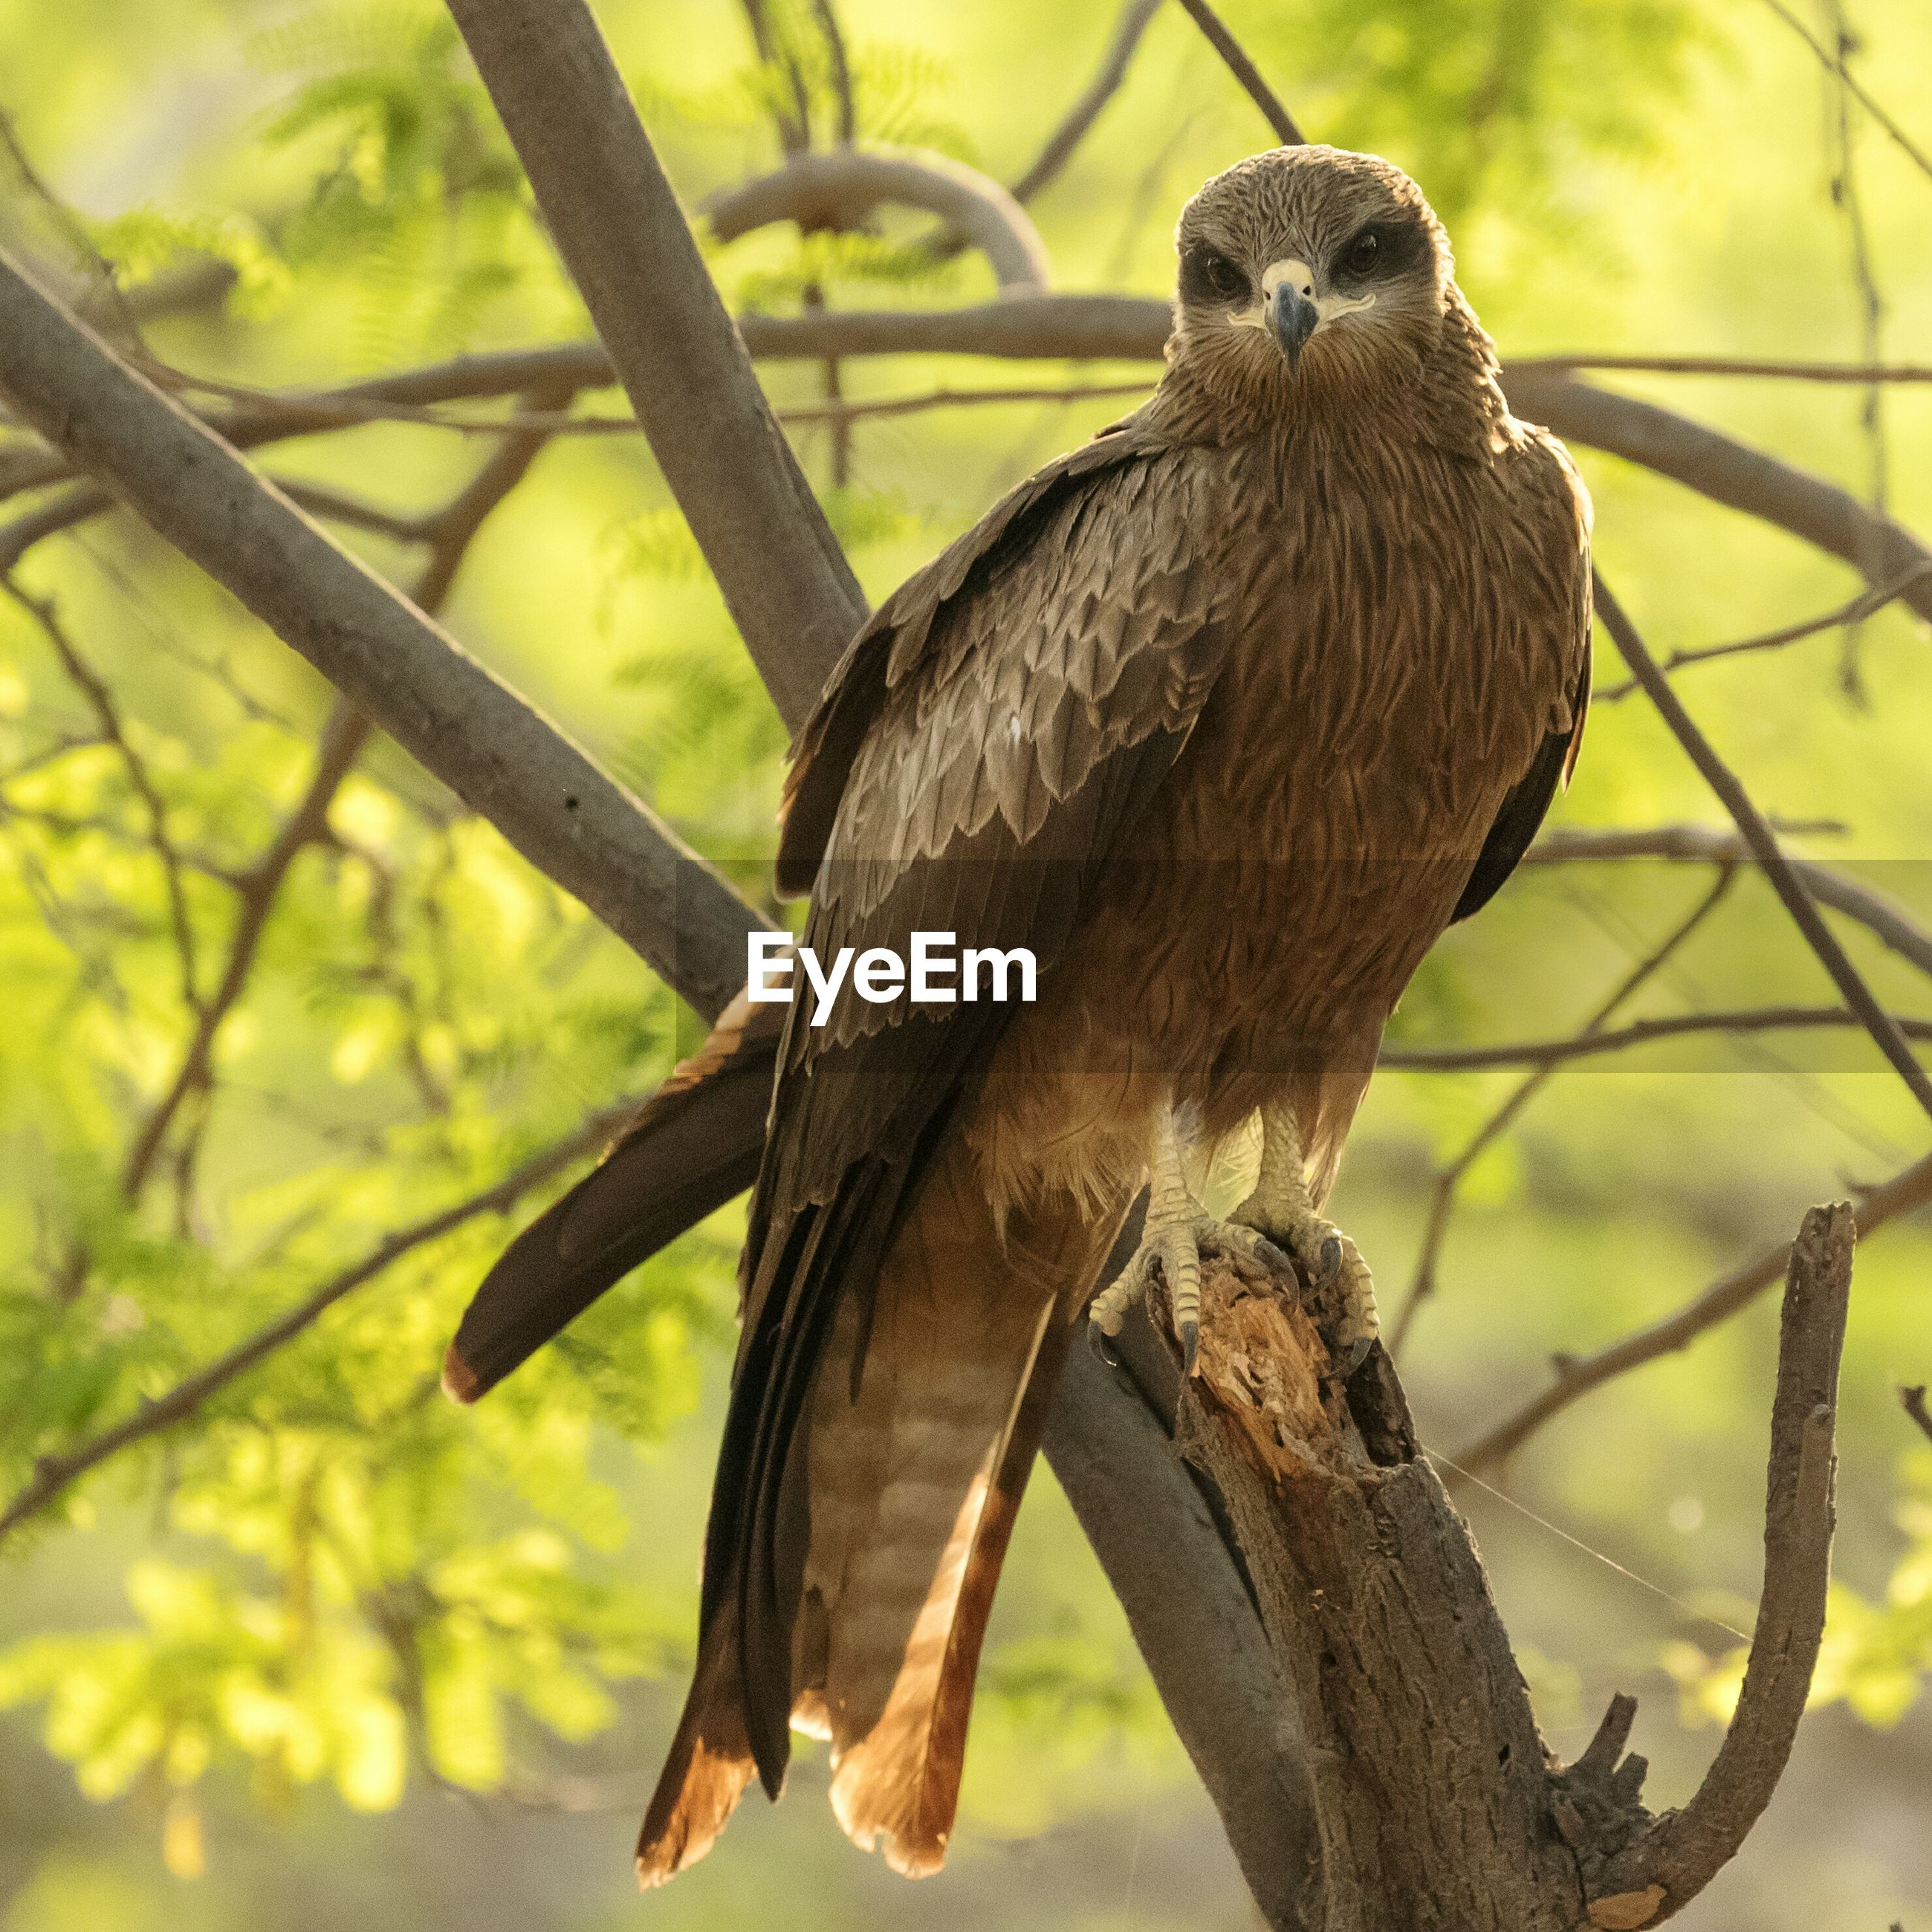 Black kite perching on tree